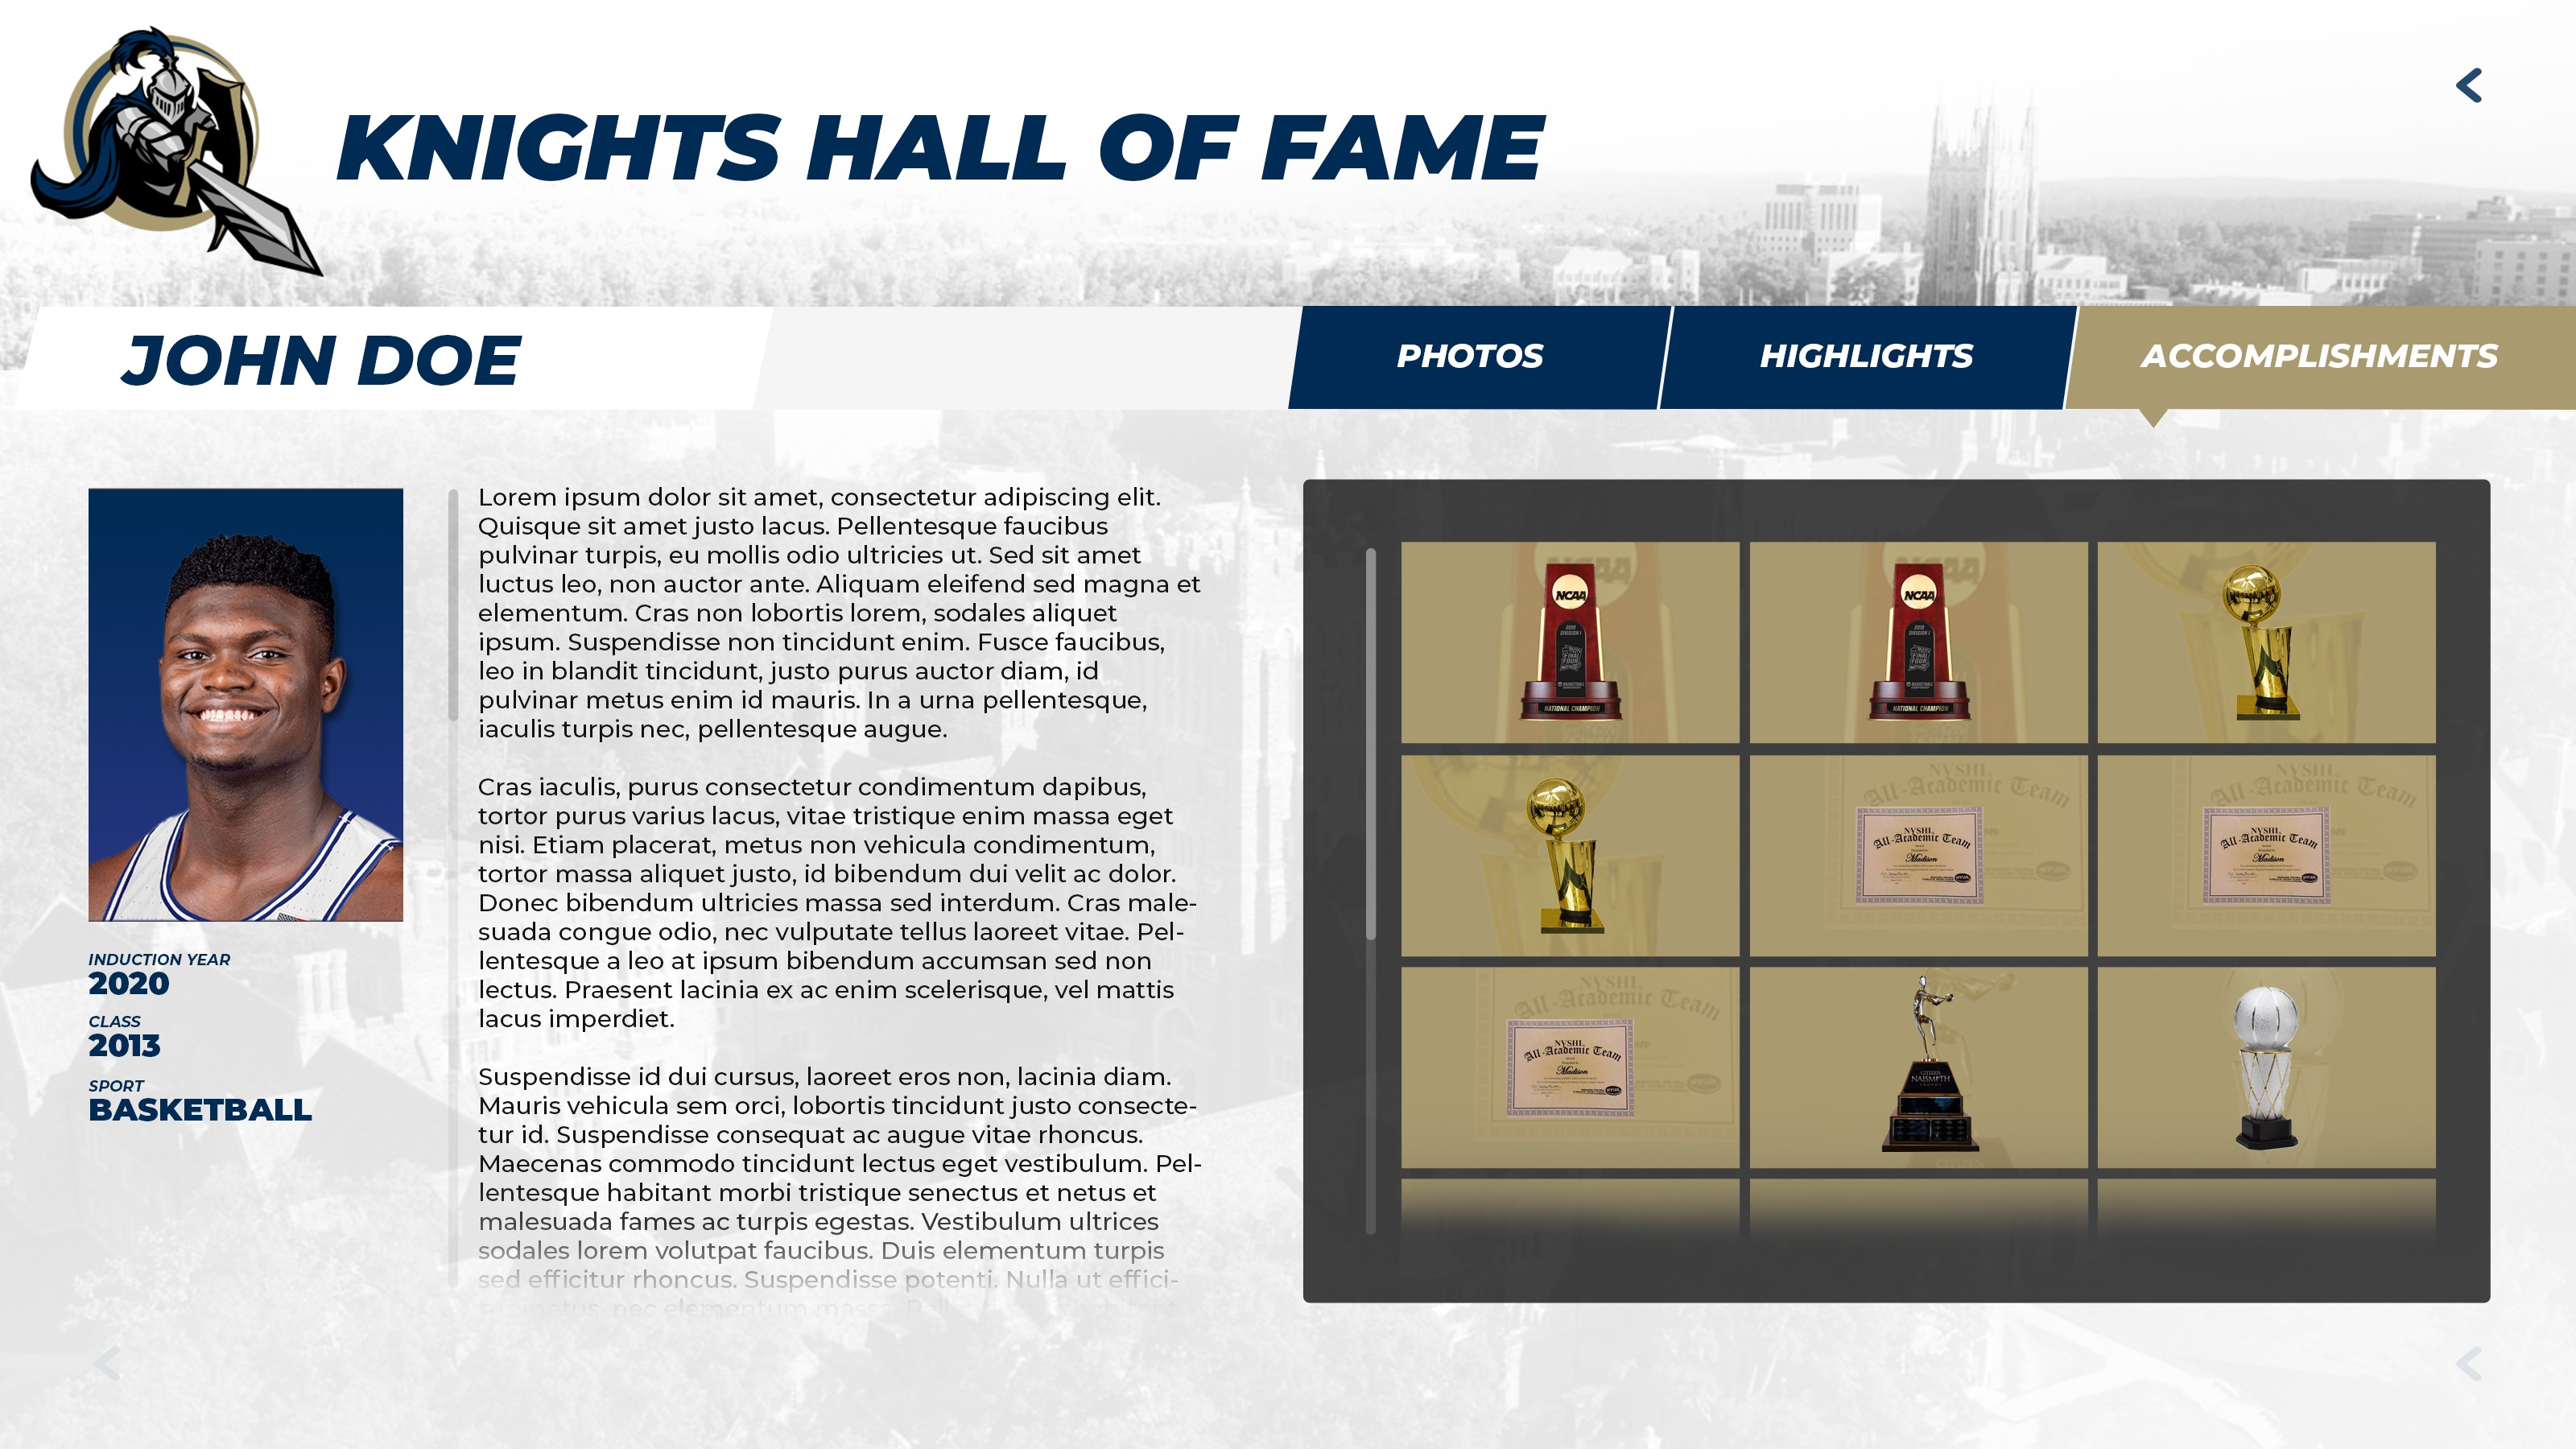 Interactive digital athletic awards